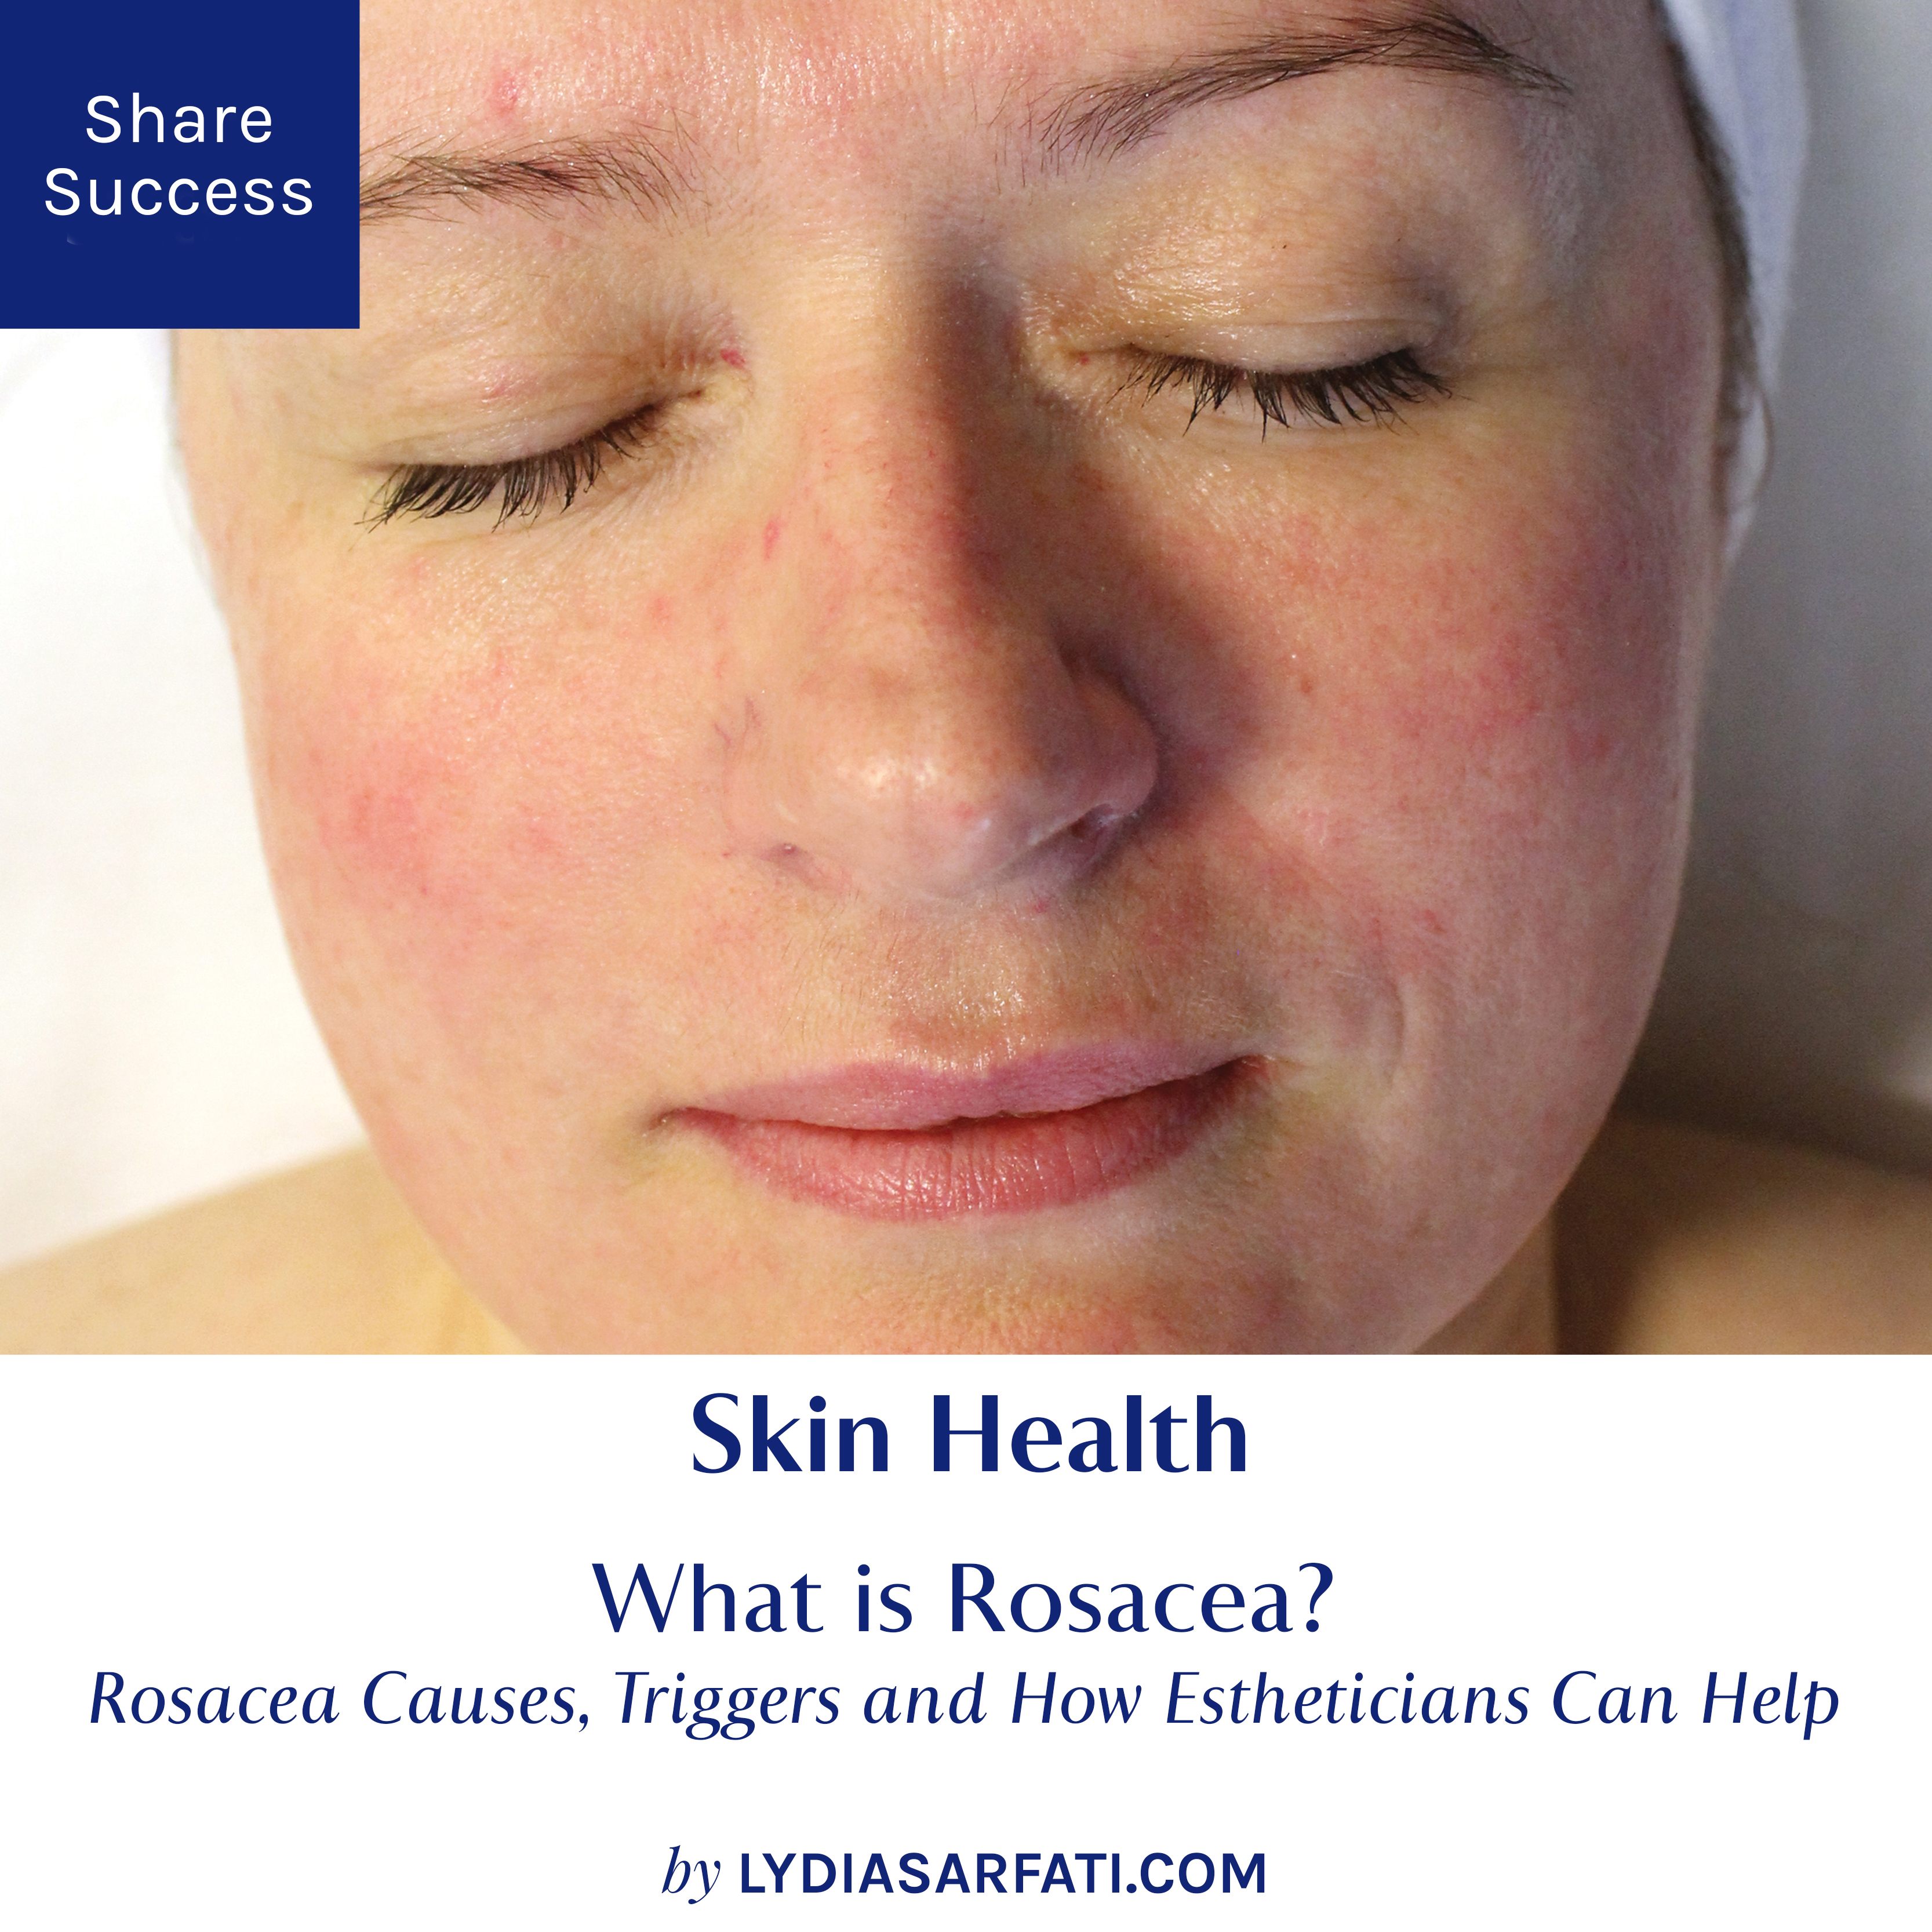 What Is Rosacea Rosacea Causes Triggers And How Estheticians Can